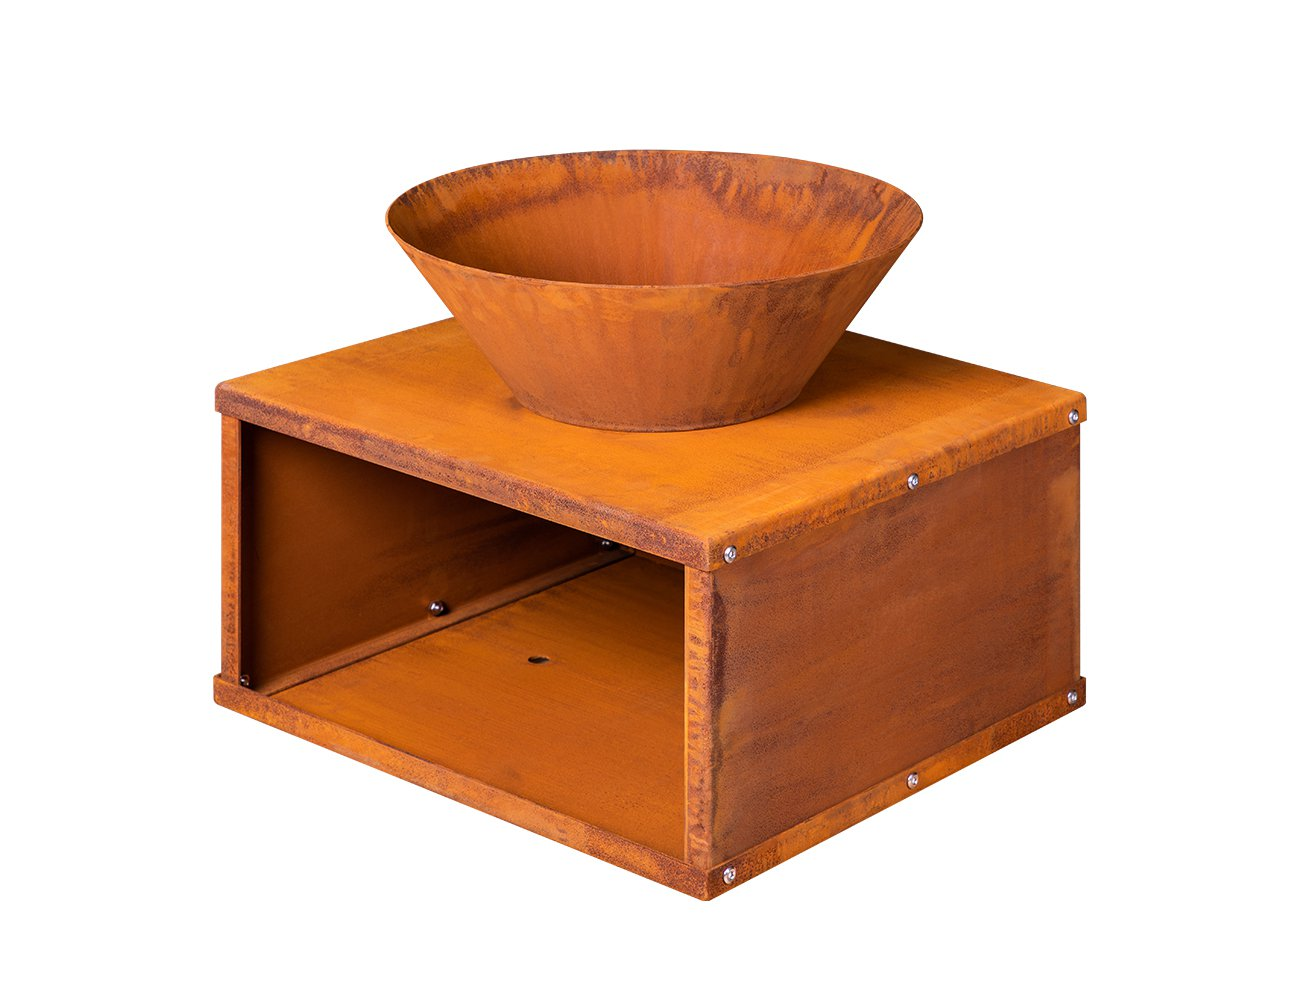 Pandora Corten Steel Bowl Brazier w/ Wood Storage